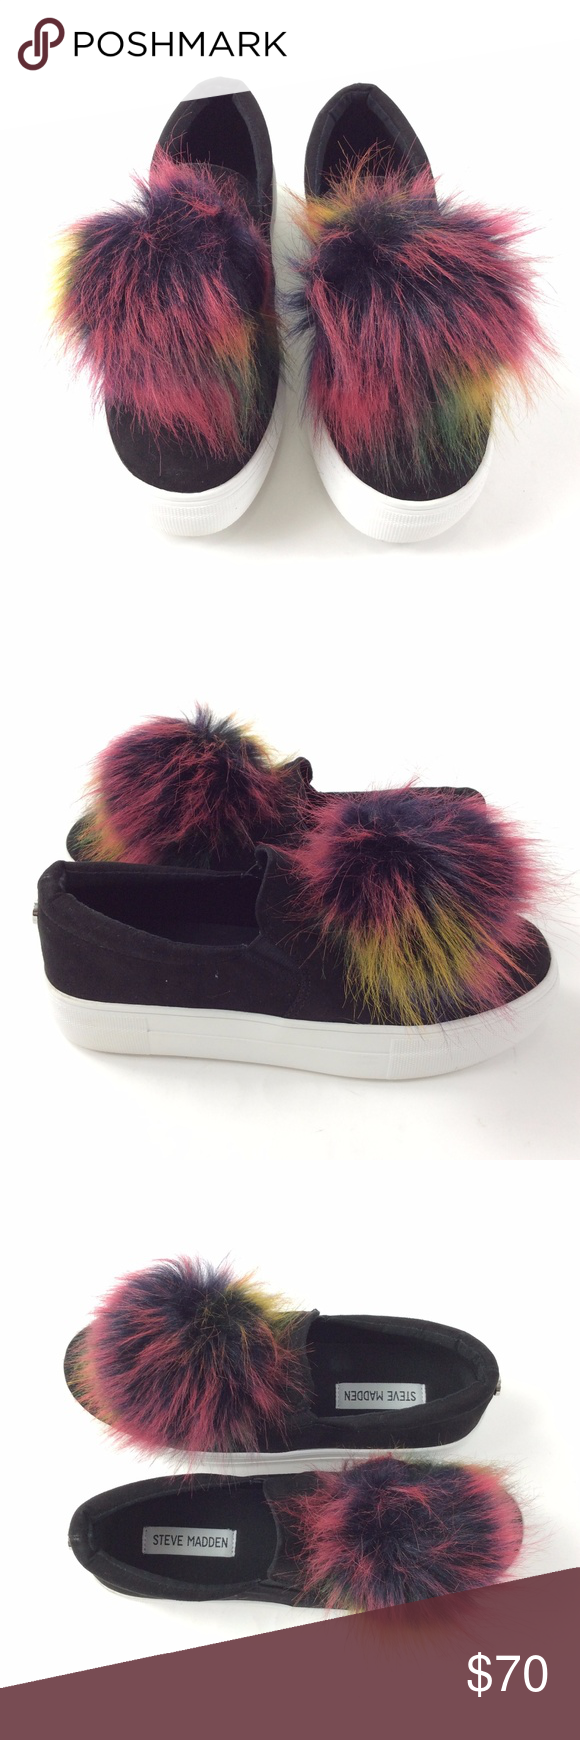 2bcd9101c75 Steve Madden Great Faux Suede Fur Sneaker Faux suede upper with ...